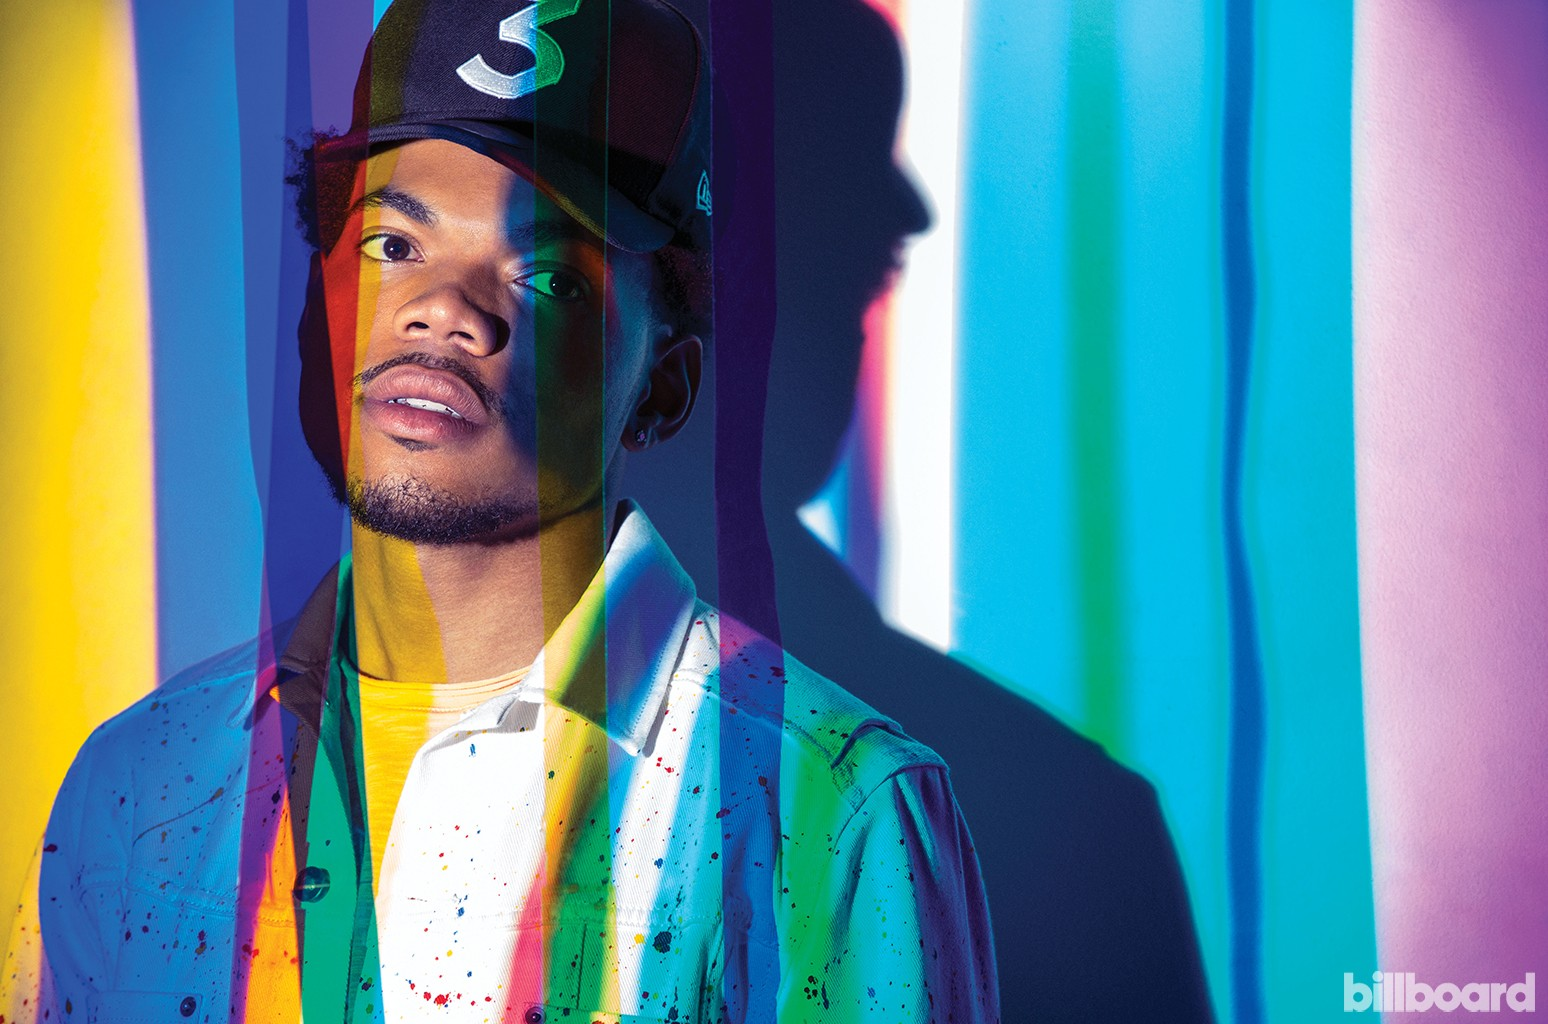 Chance The Rapper?